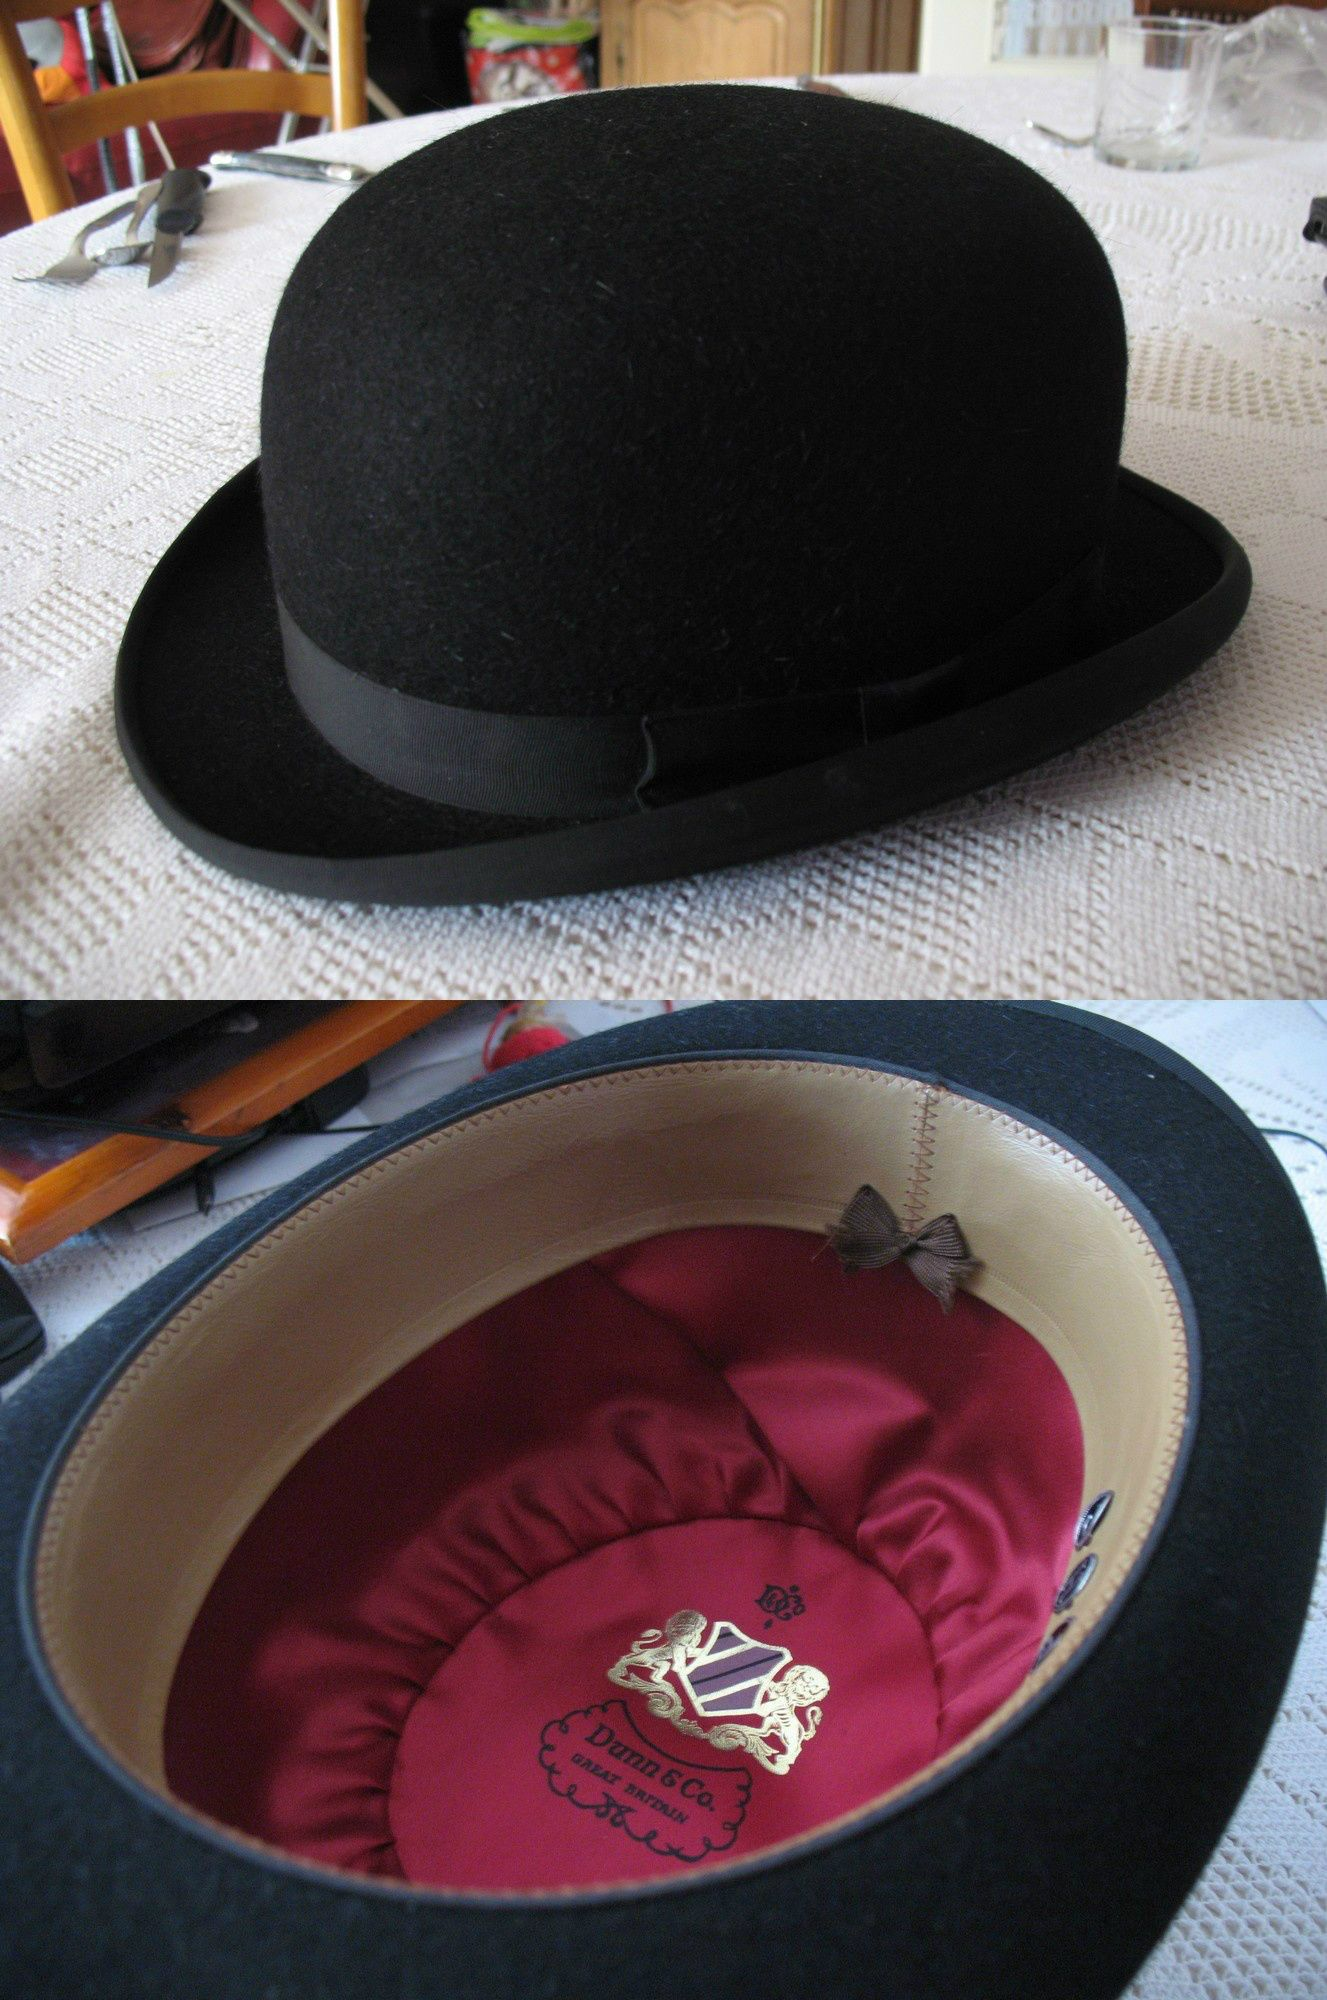 Dunn And Co Bowler Hat Hats Used In The Film Were From Austin Reed Regent Street London Austin Reed Bowler Hat Orange Design